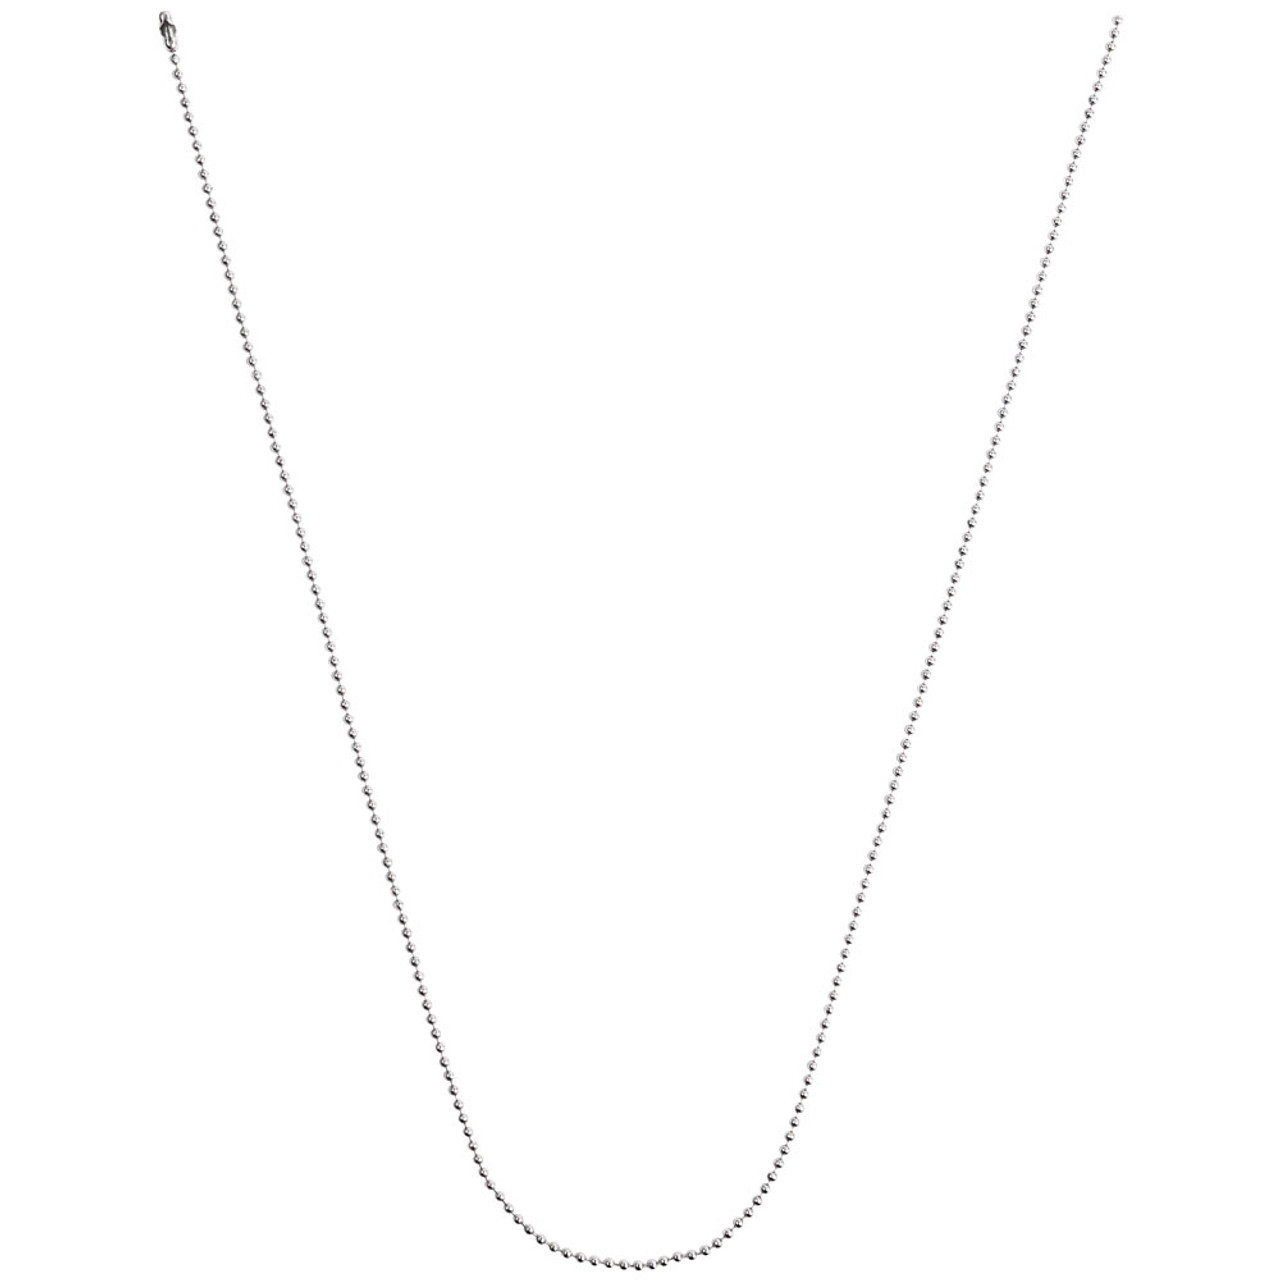 #3 24 inch ball chain necklace and neck chain unclasped in v shape.